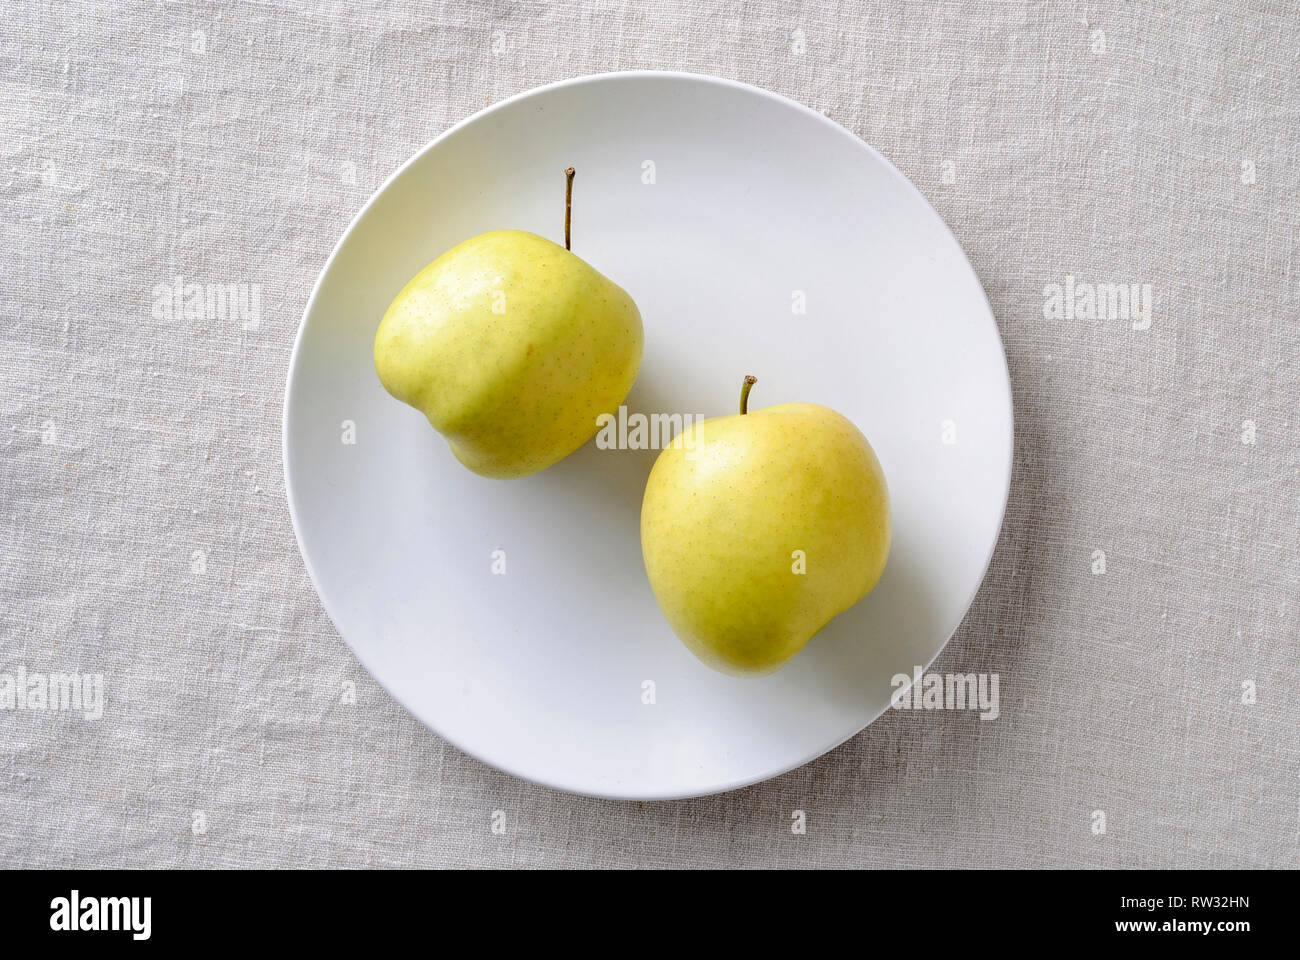 Imperfect ugly misshapen fresh golden apples rich in vitamins served on a plate - Stock Image